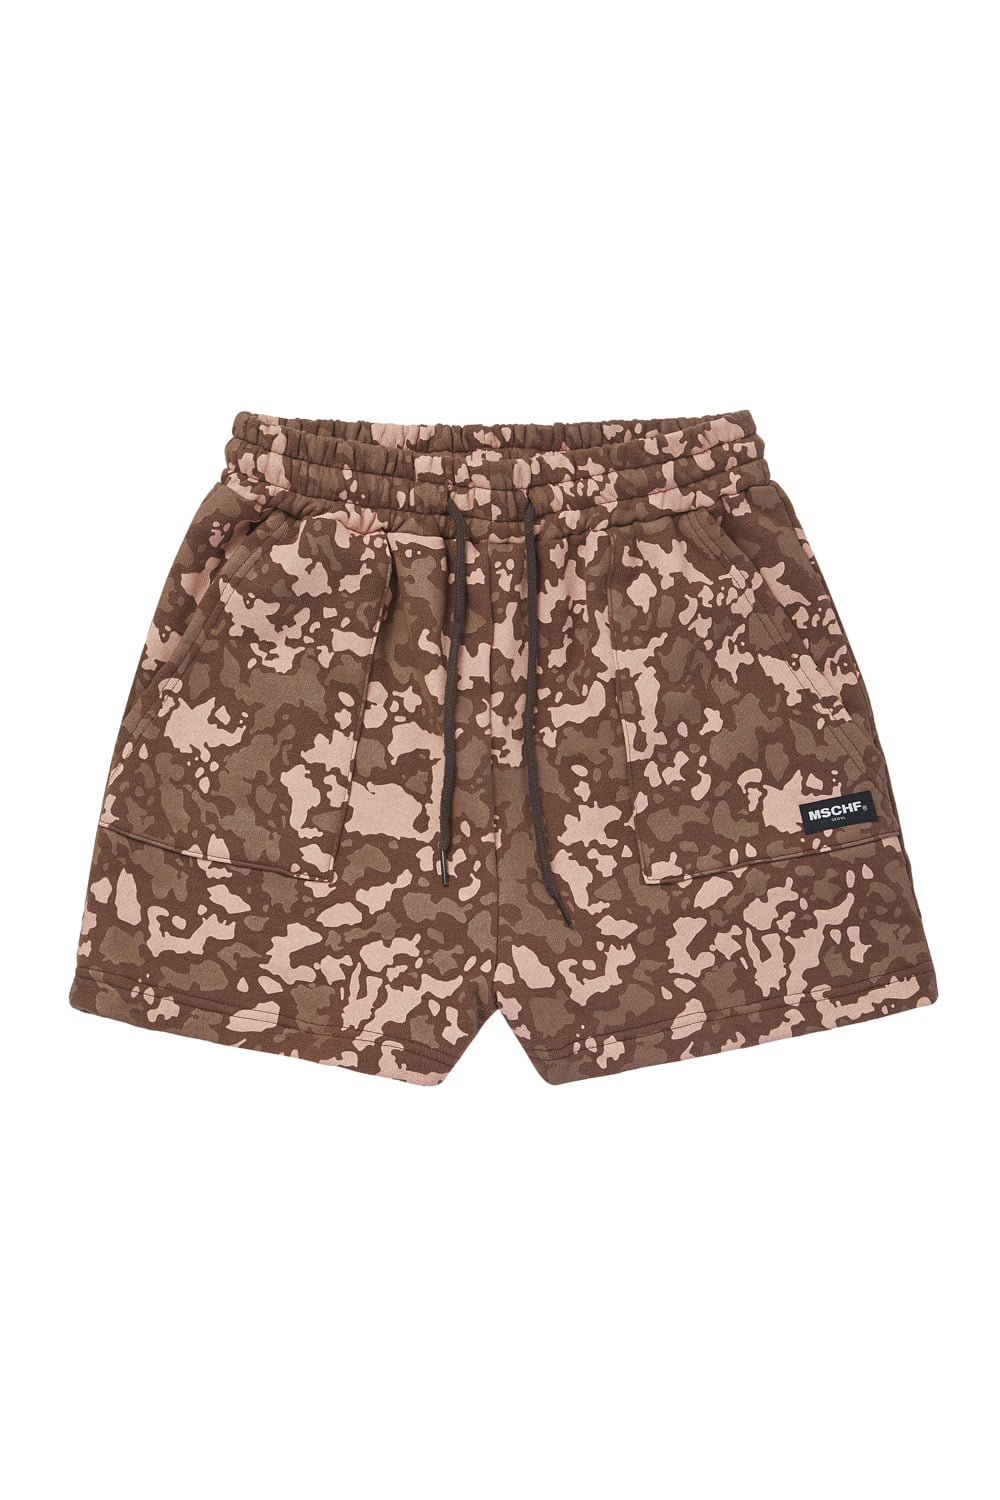 CAMO TRAINING SHORTS_brown multi